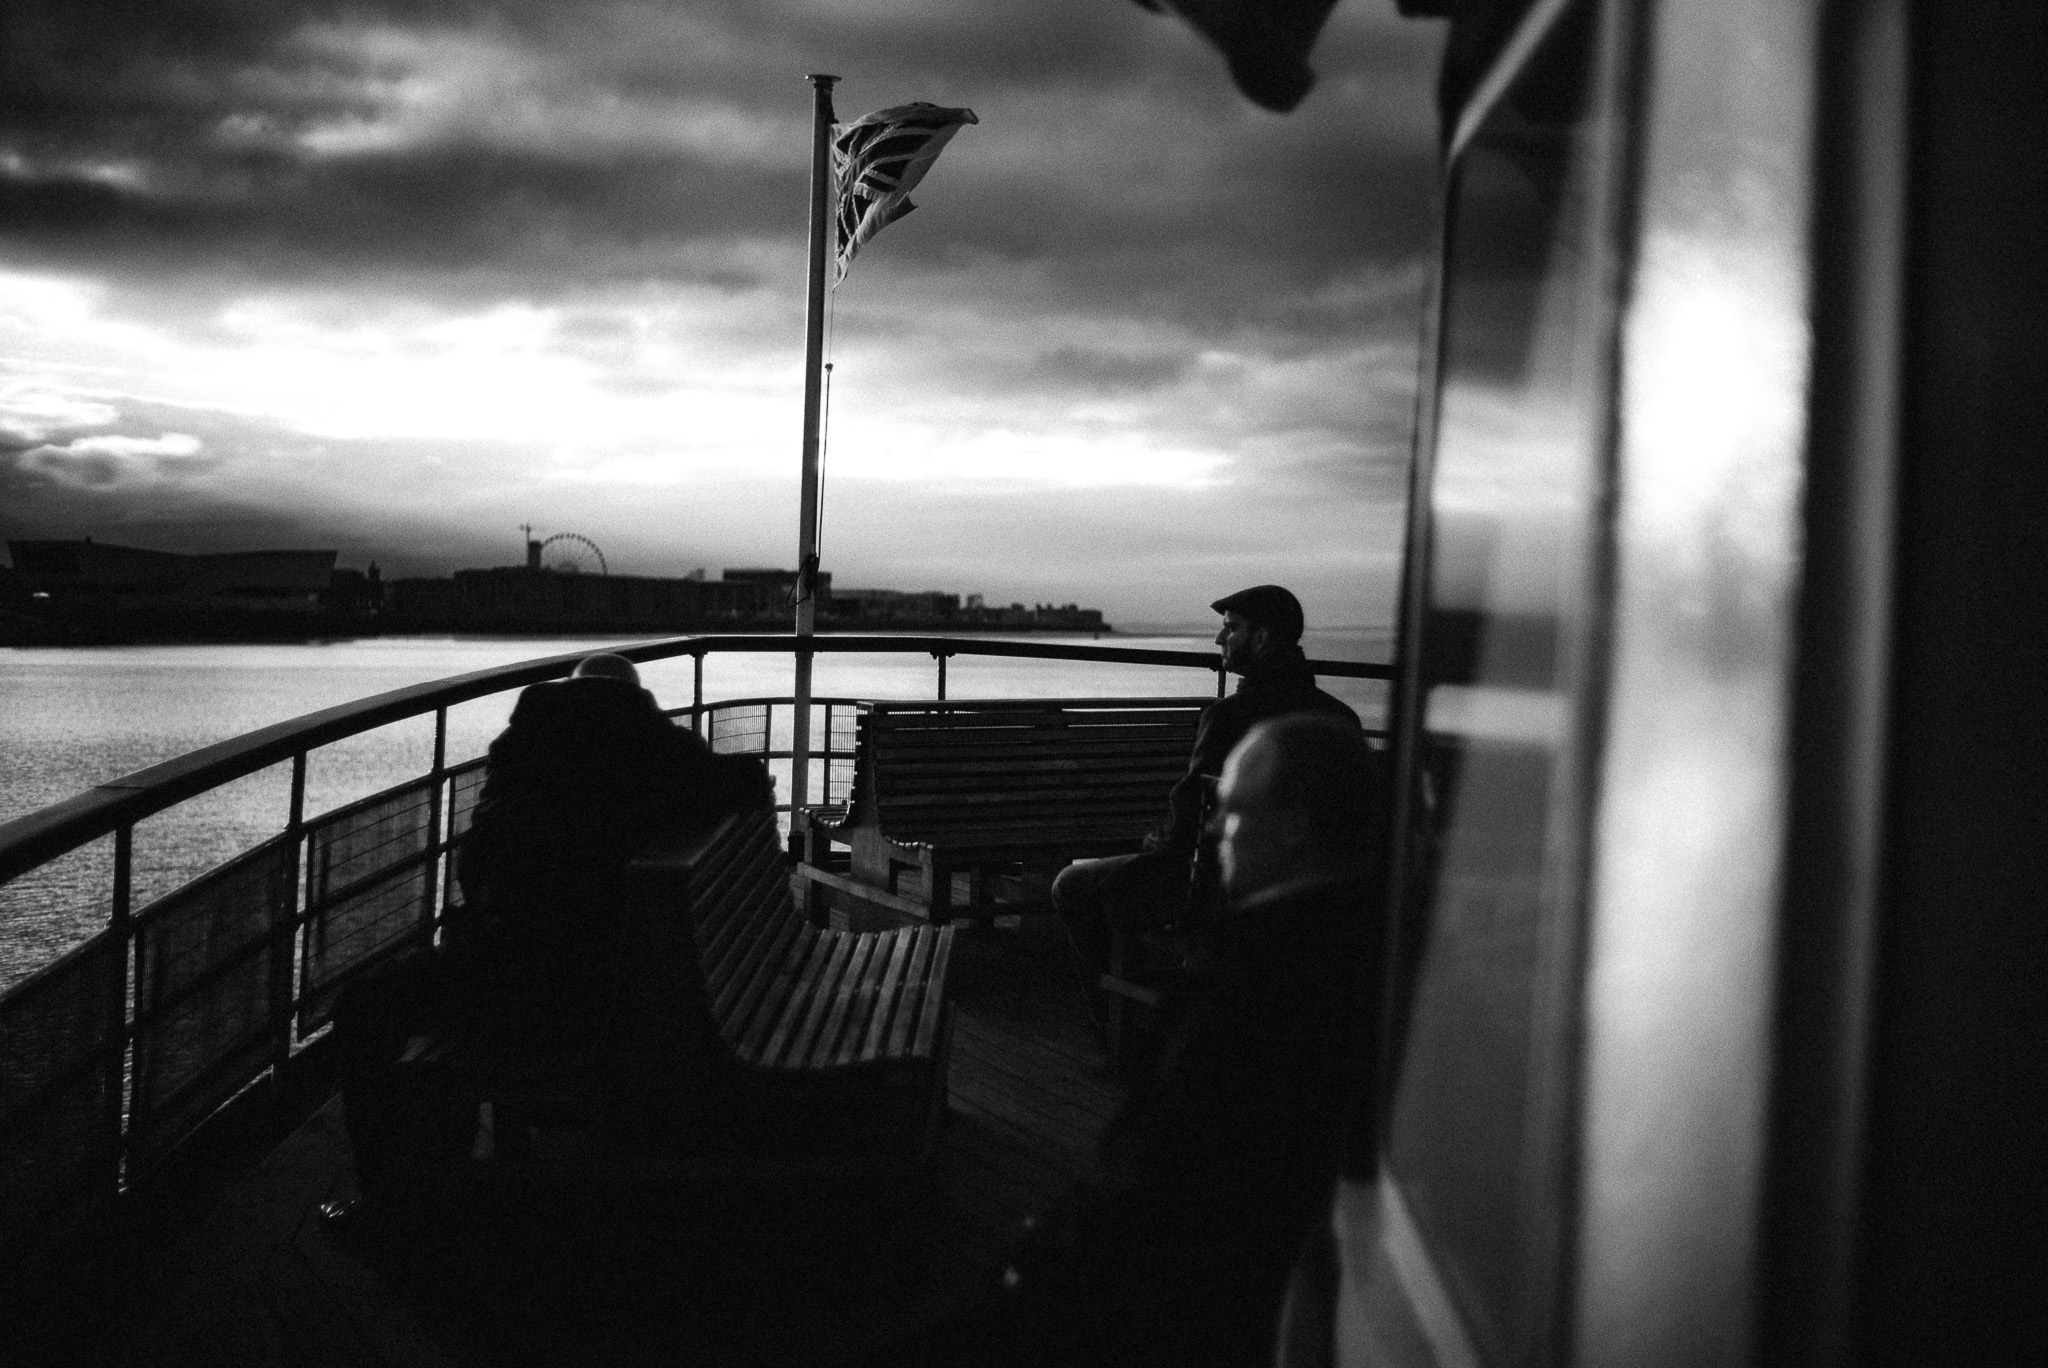 I miss the ferry